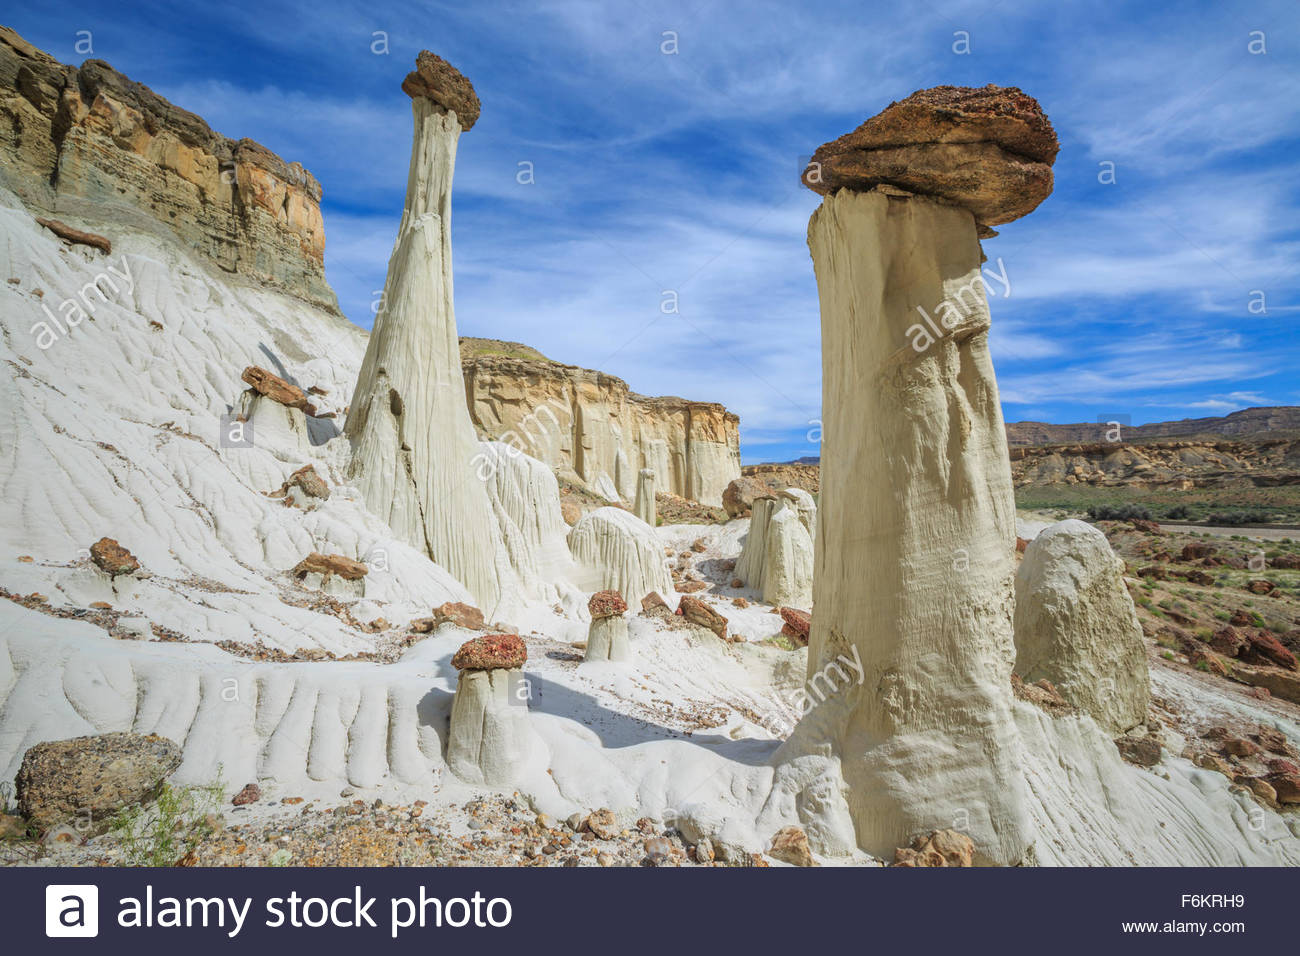 Hoodoos In Wahweap Creek Basin Near Big Water, Utah Stock Photo.